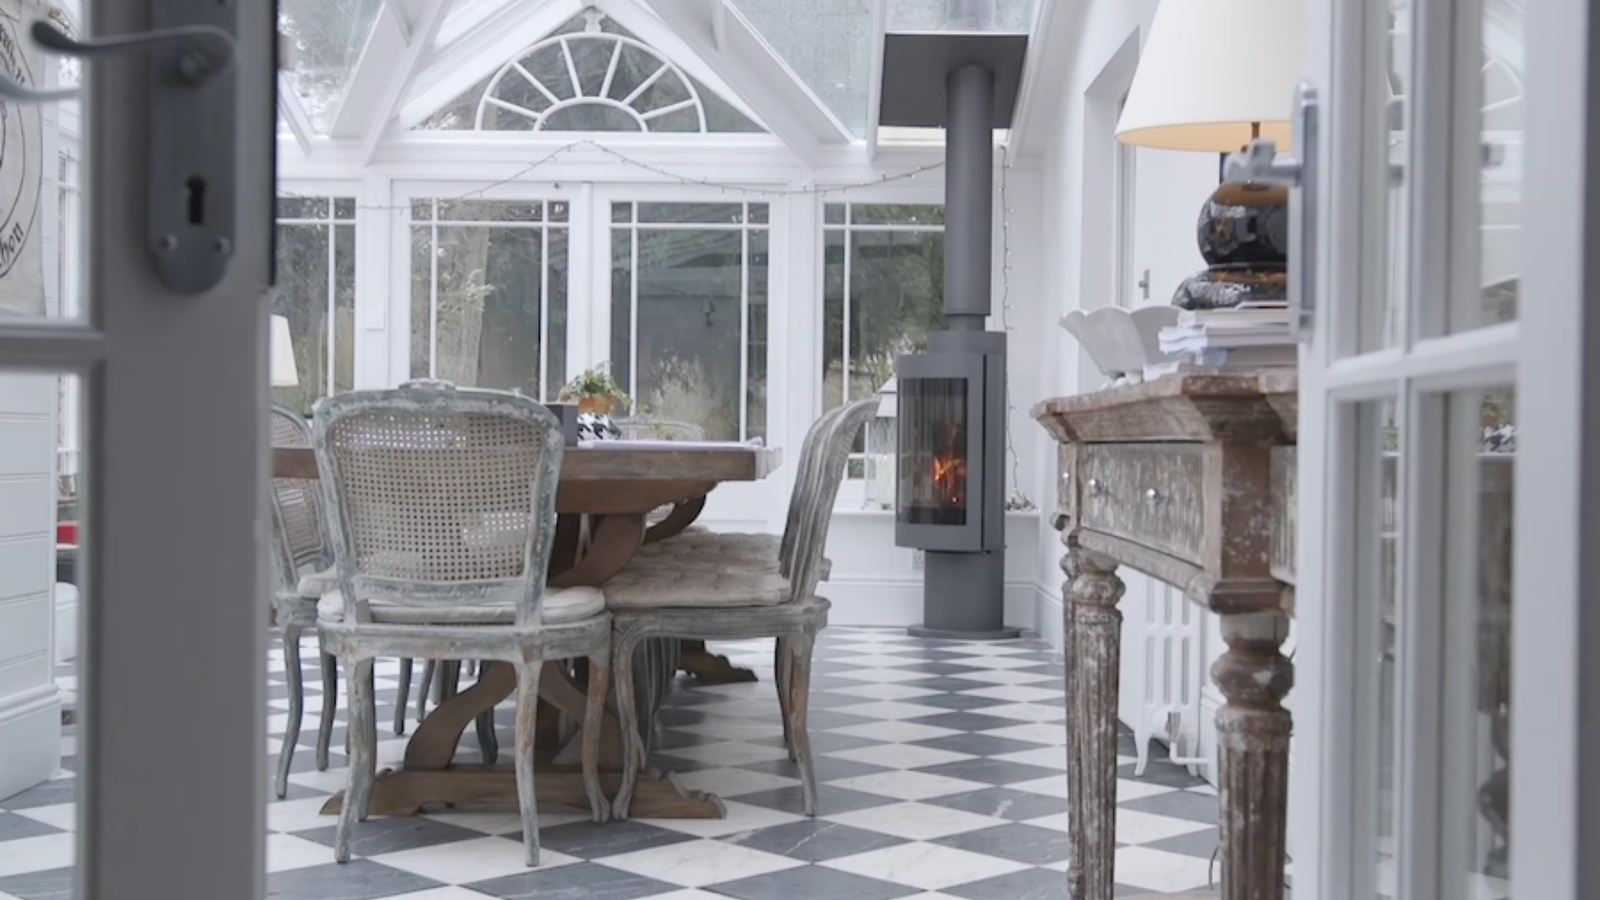 The conservatory dining room with Harrie Leenders slim Cylon log burner.